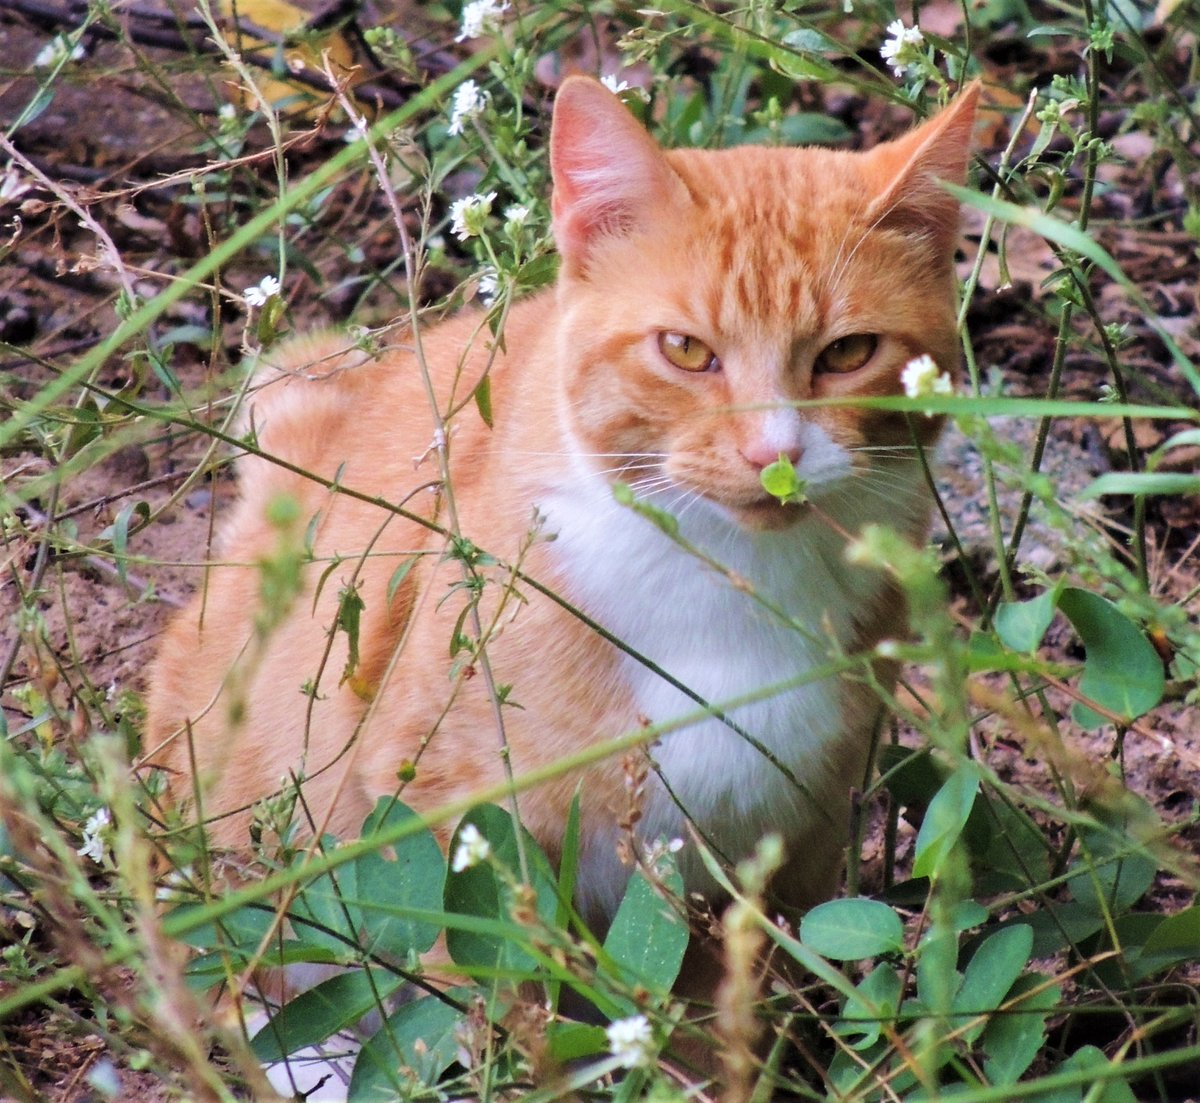 #Caturday  Stray boy out in the wild before he came inside to become our beloved boy Scotty.  @Richard_H